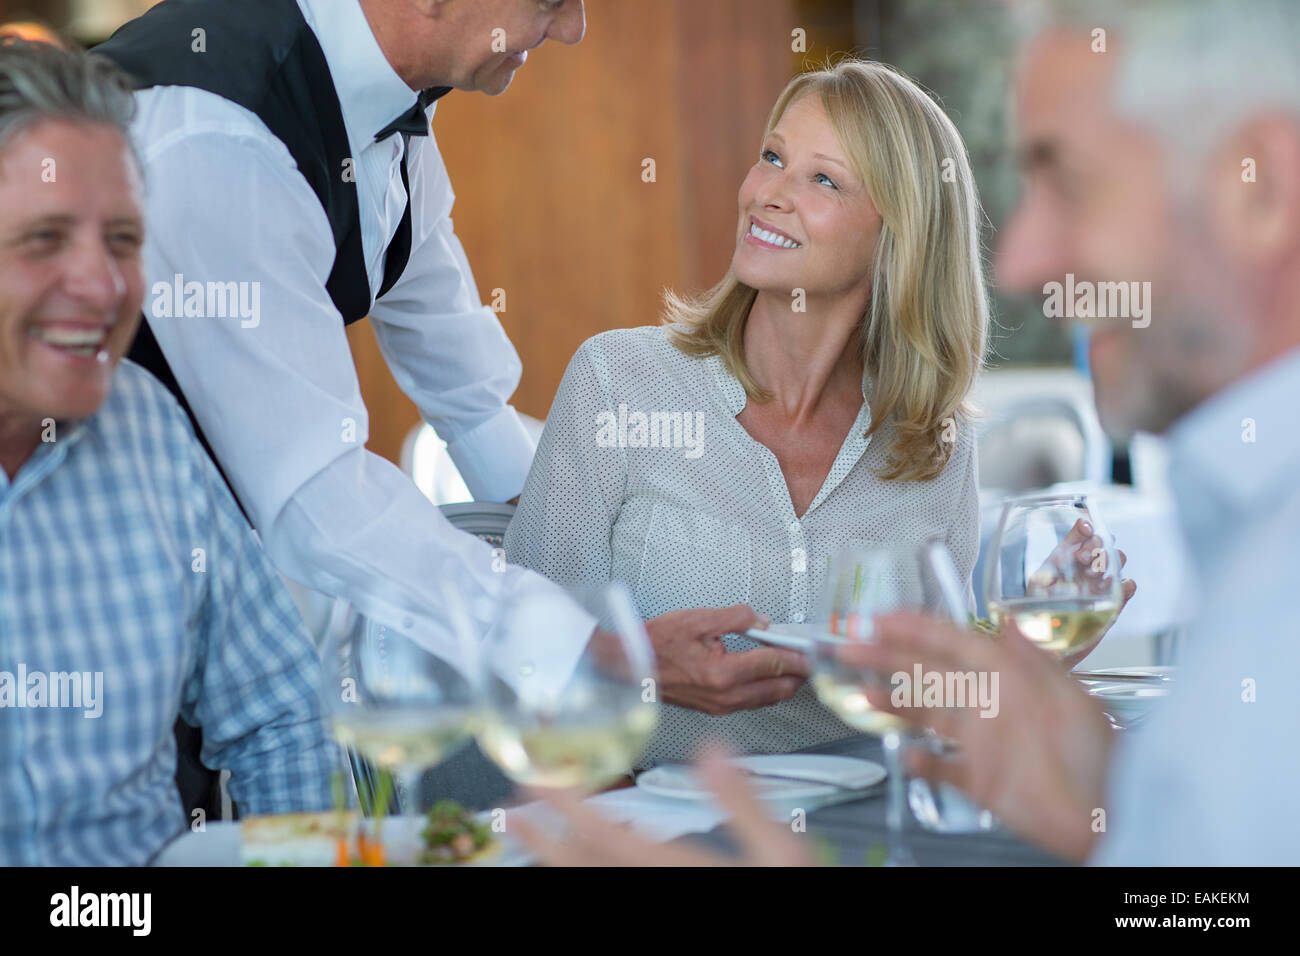 Waiter serving food to woman in restaurant - Stock Image